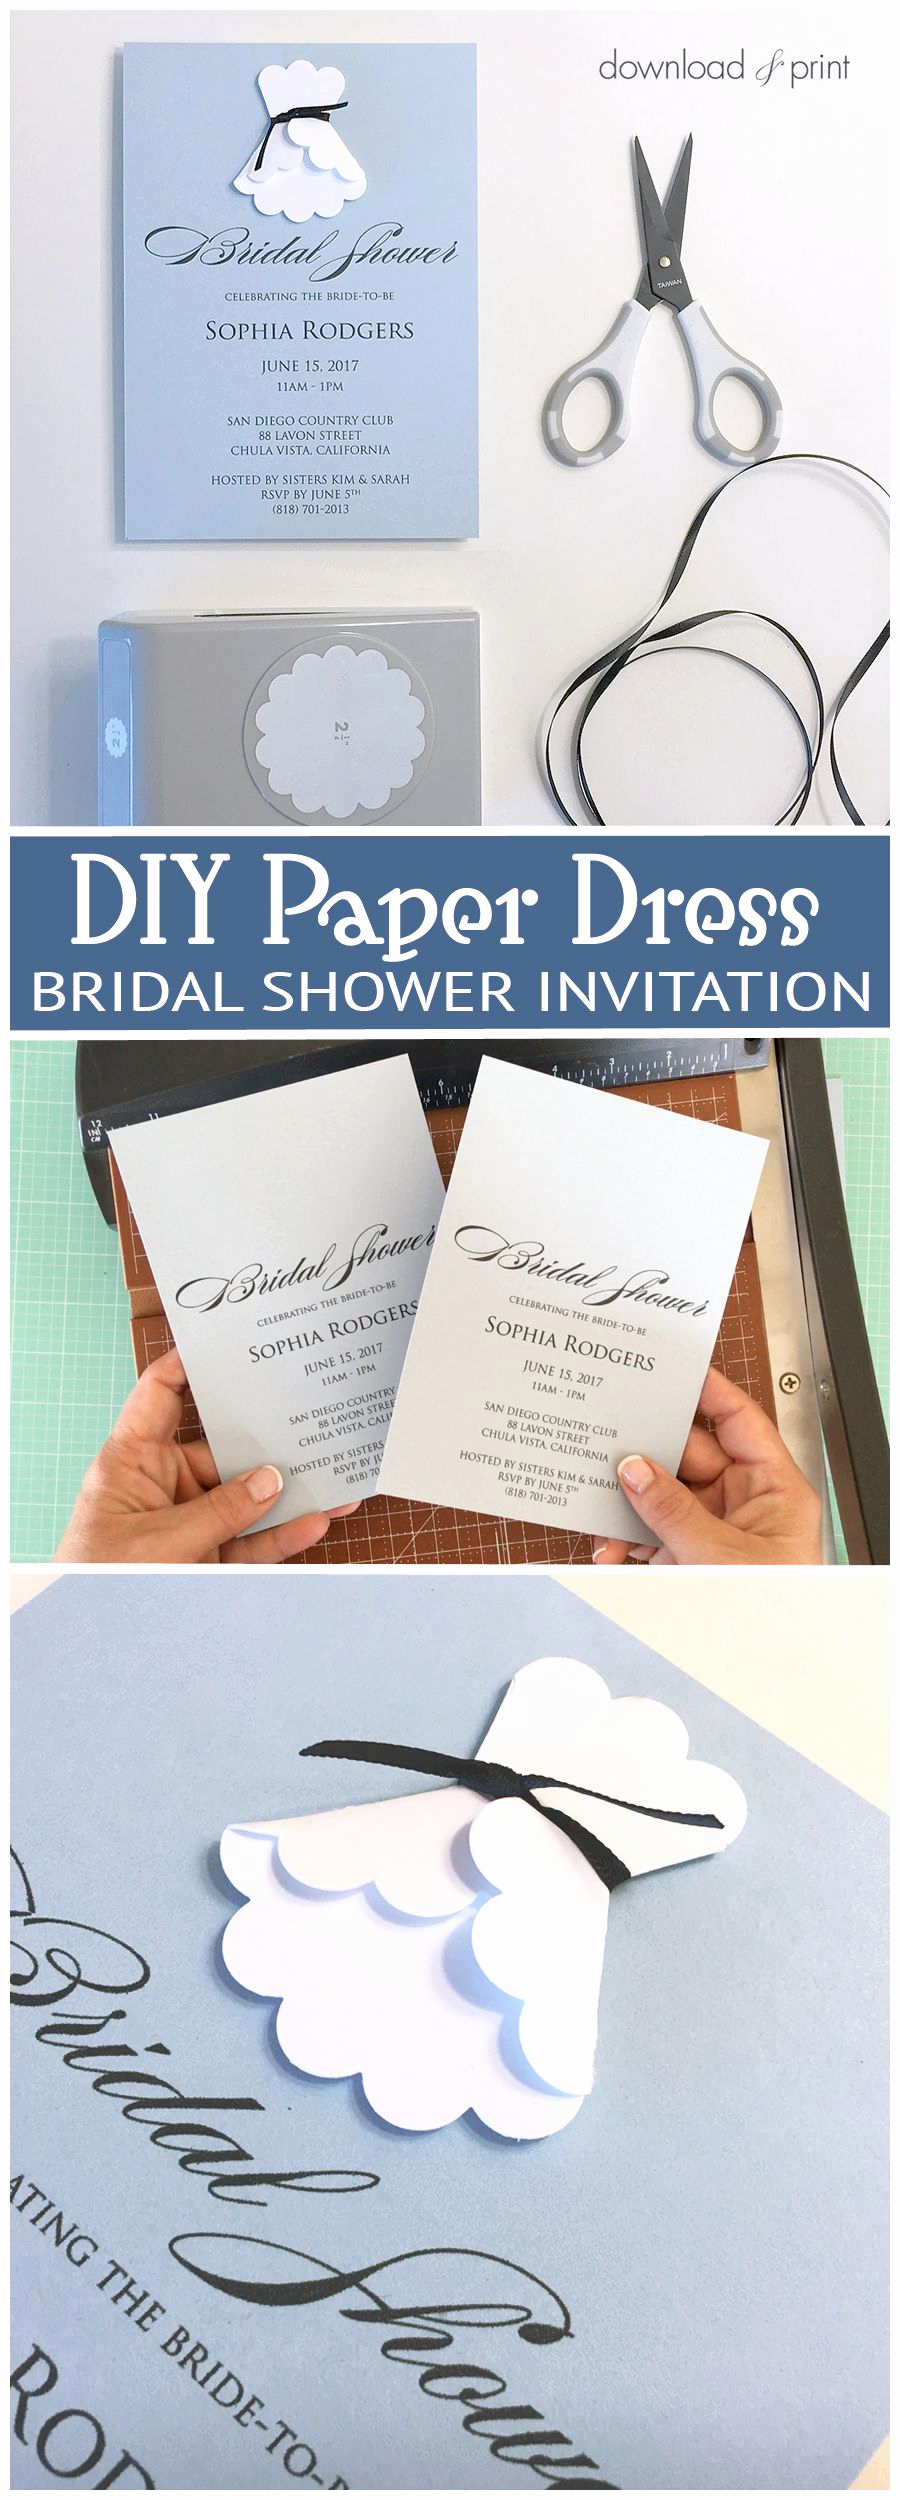 Bridal Shower Invitation Template Free Beautiful Sweet and Simple Bridal Shower Invitation with A Diy Paper